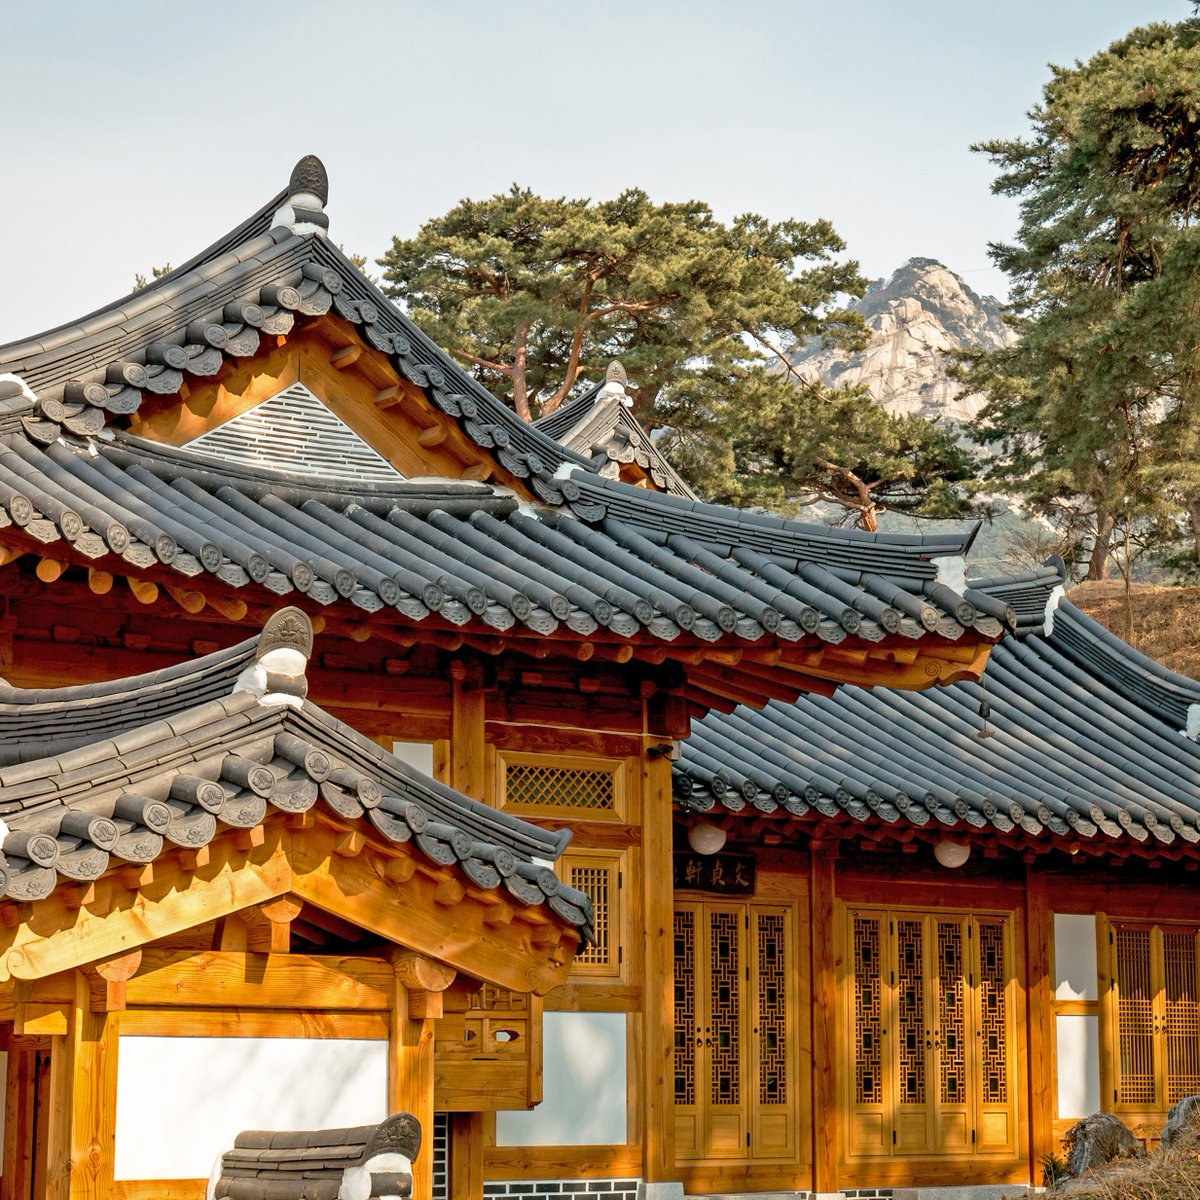 Surrounded by the Bukhansan Mountain, Eunpyeong Hanok Village located in Jingwang-dong, Eunpyeong-gu is known for its picturesque views and fresh air.  Take a look at these pictures, it's springtime in Eunpyeong Hanok Village now!  #ISeoulU #Seoul pic.twitter.com/4LUMK2Y7h9